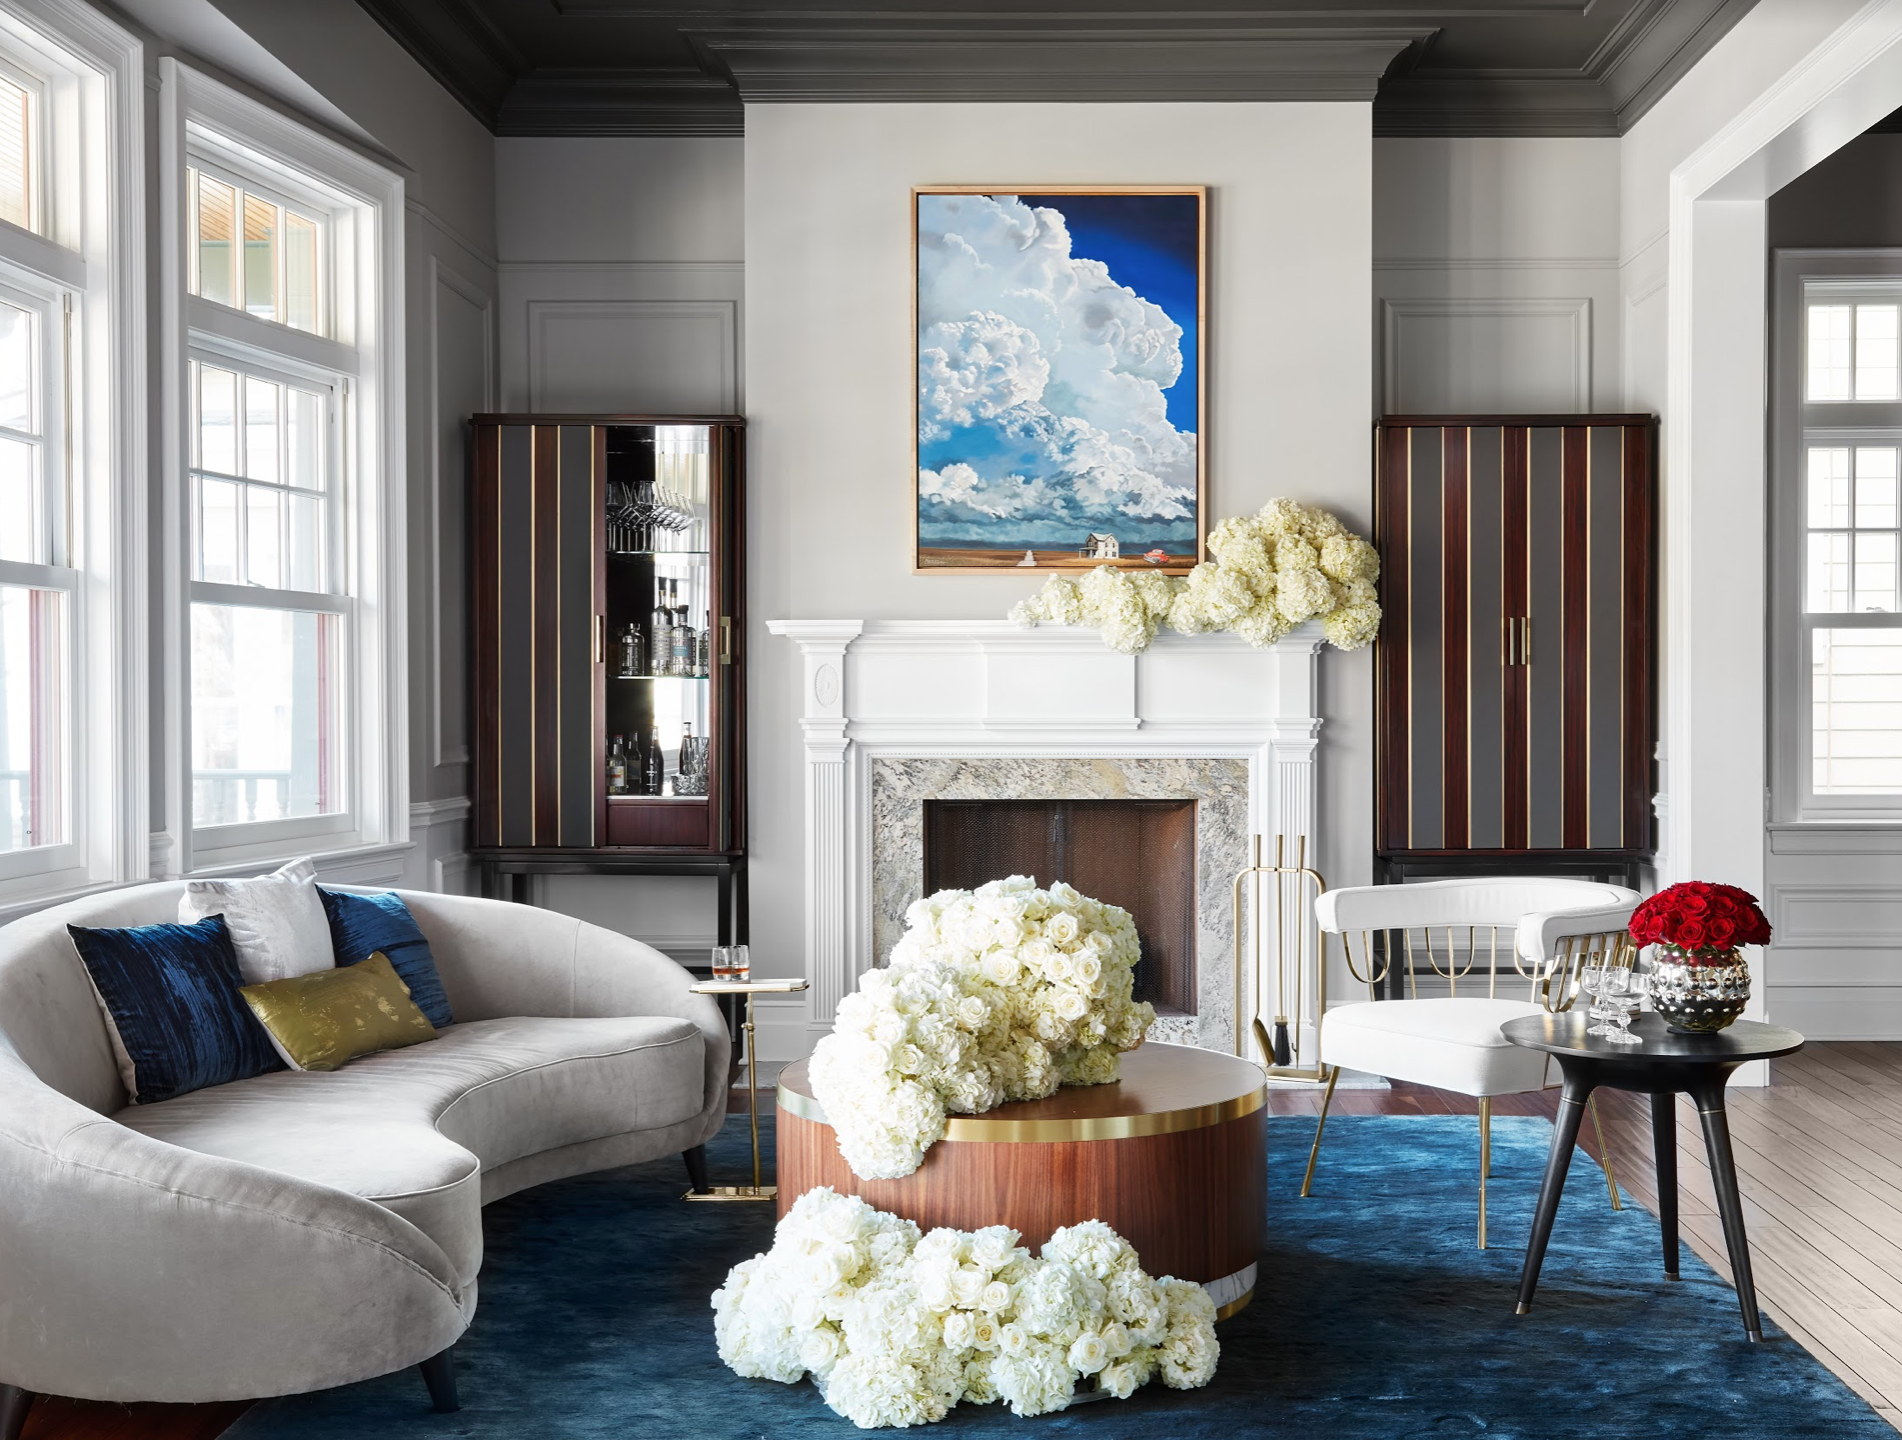 Tour a Timeless, Decadent Space in Ravenswood, Chicago